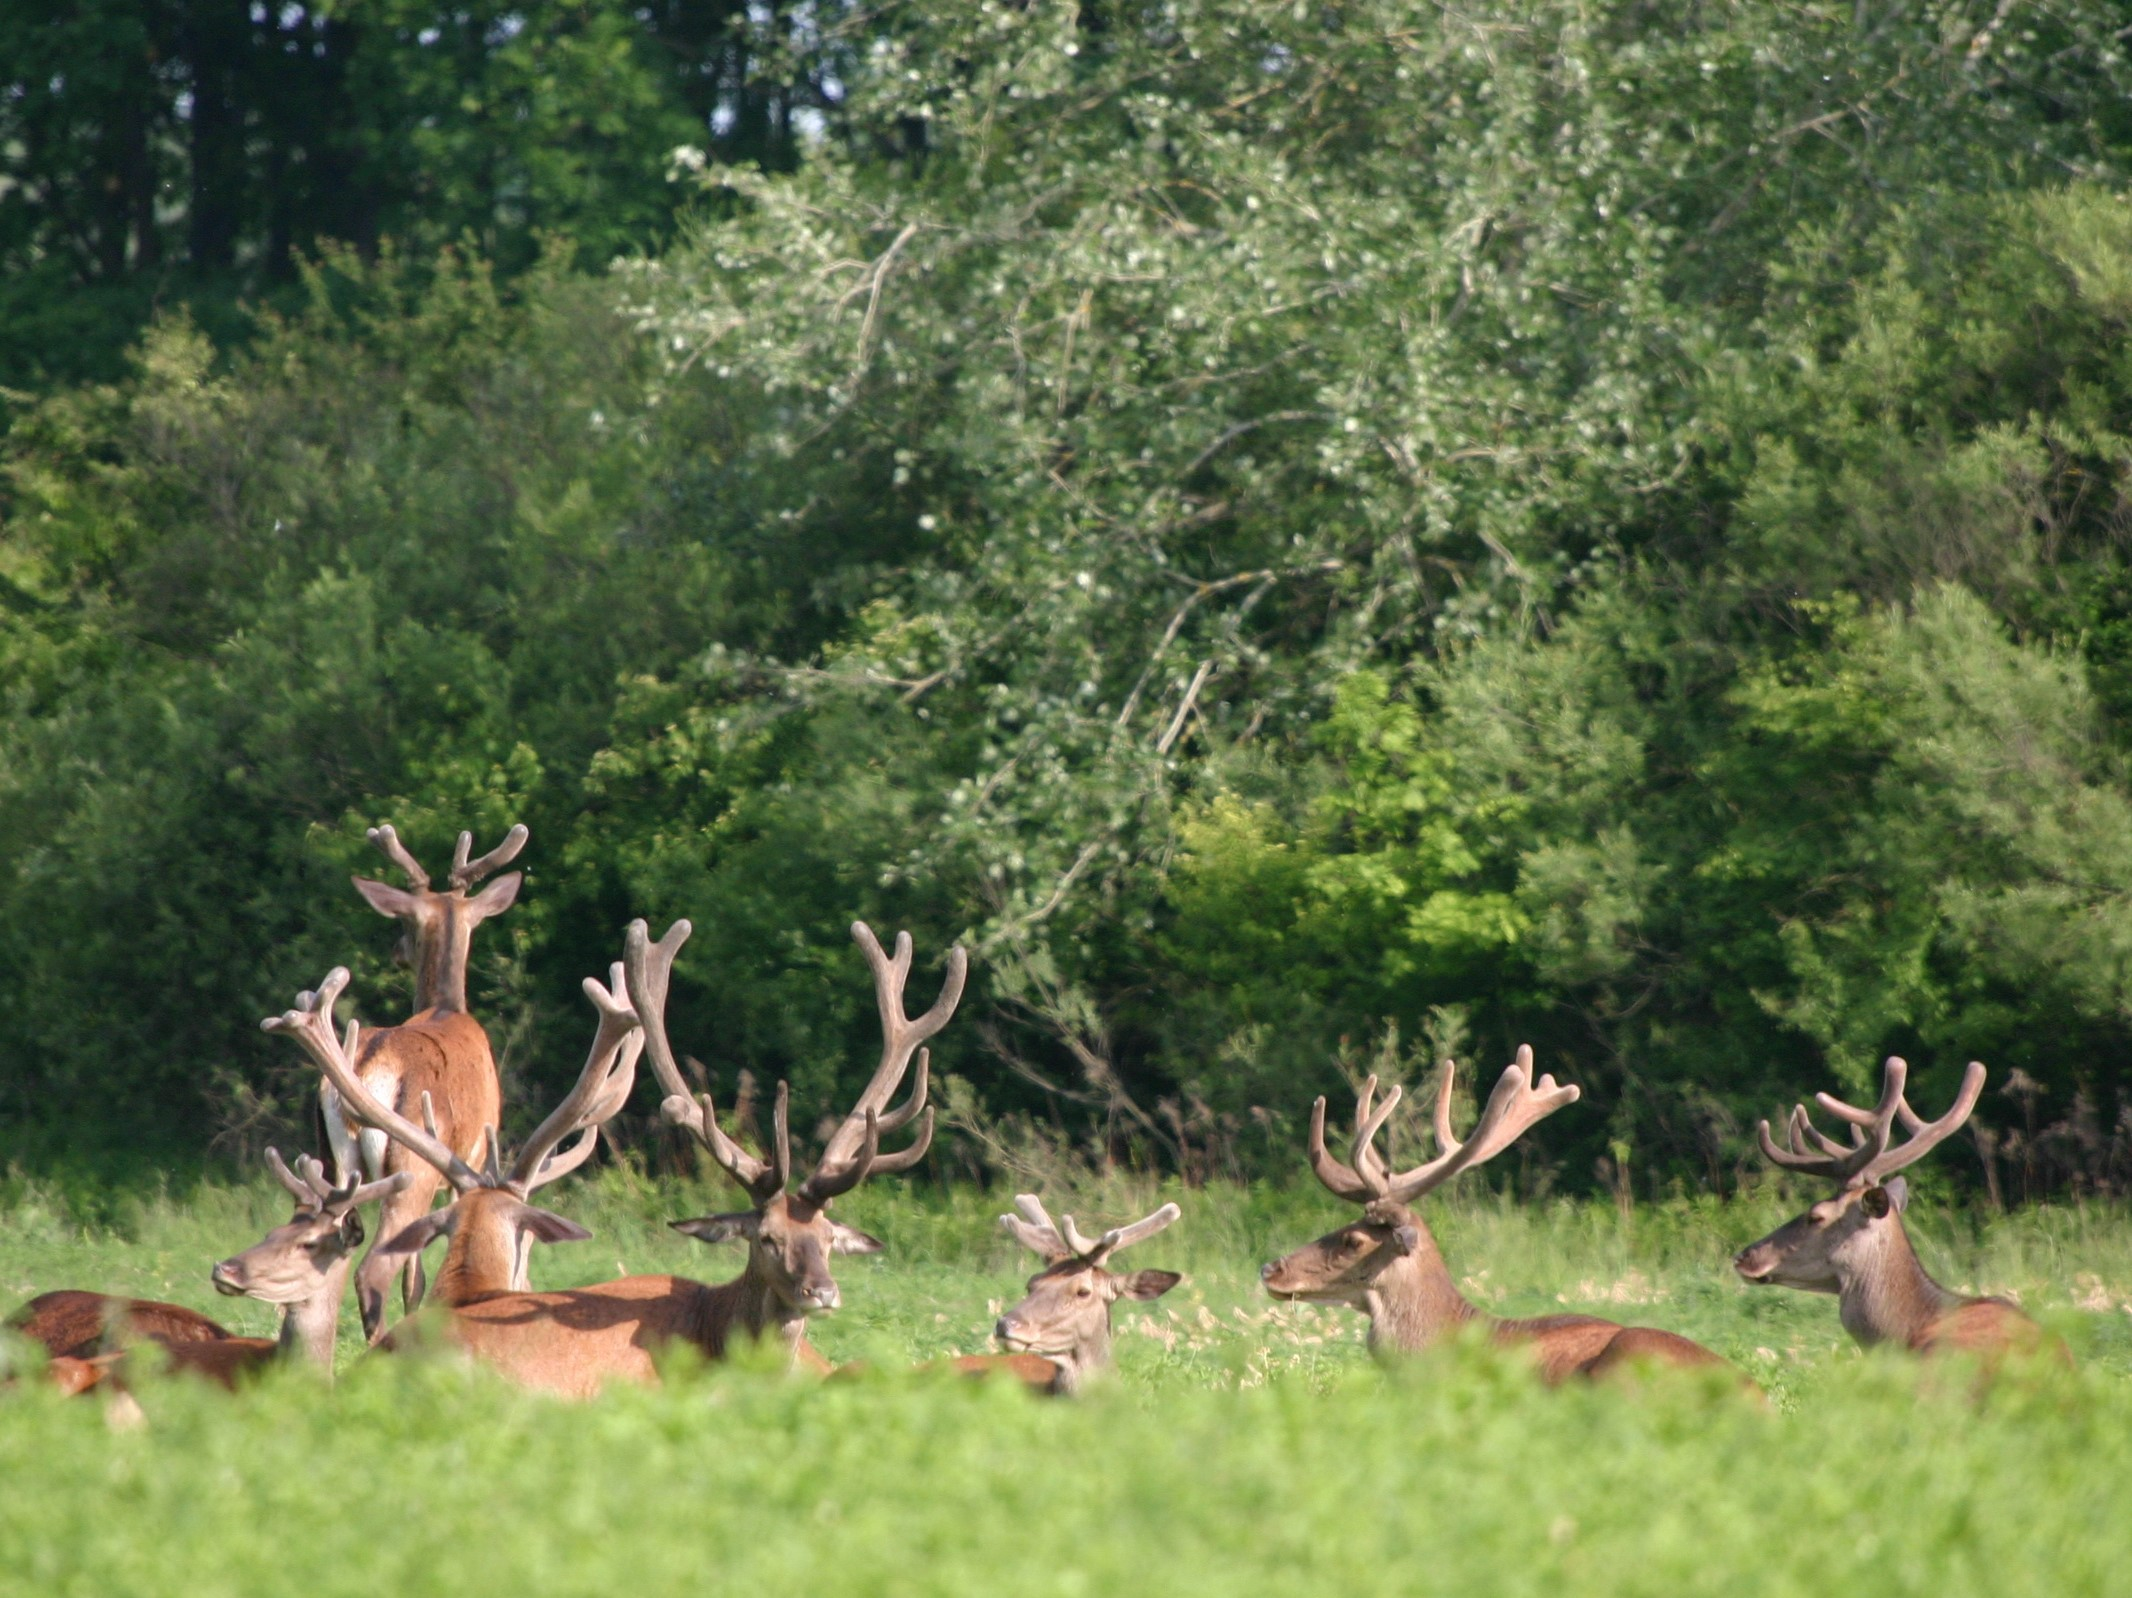 By the river of Danube, Red deer in floodplain forest, stags in velvet (C) Vrataric